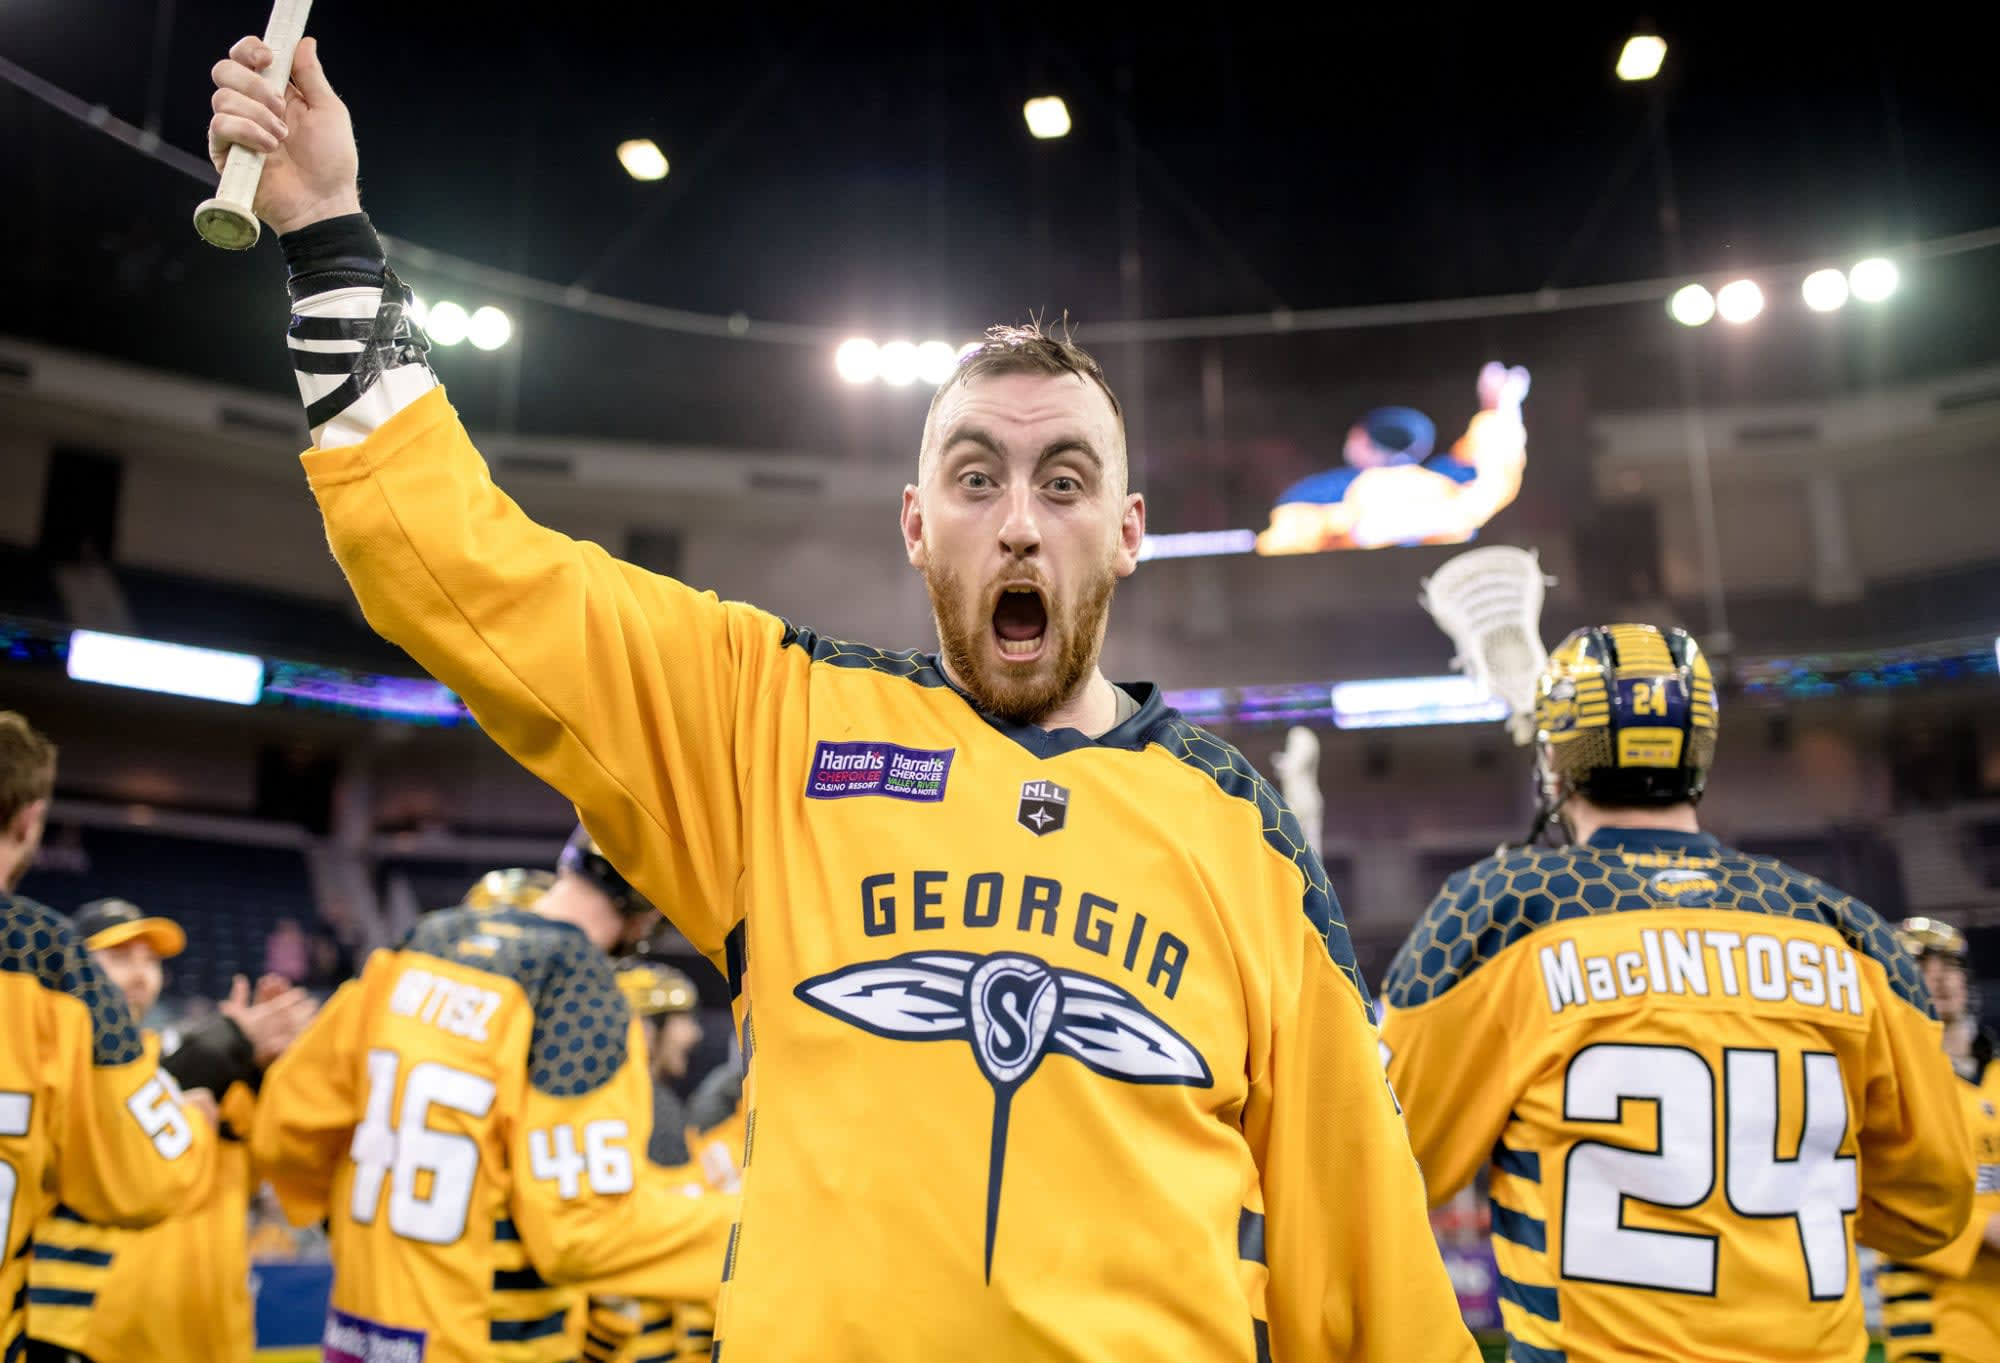 Georgia Swarm Vancouver Stealth NLL 2018 twitter reacts